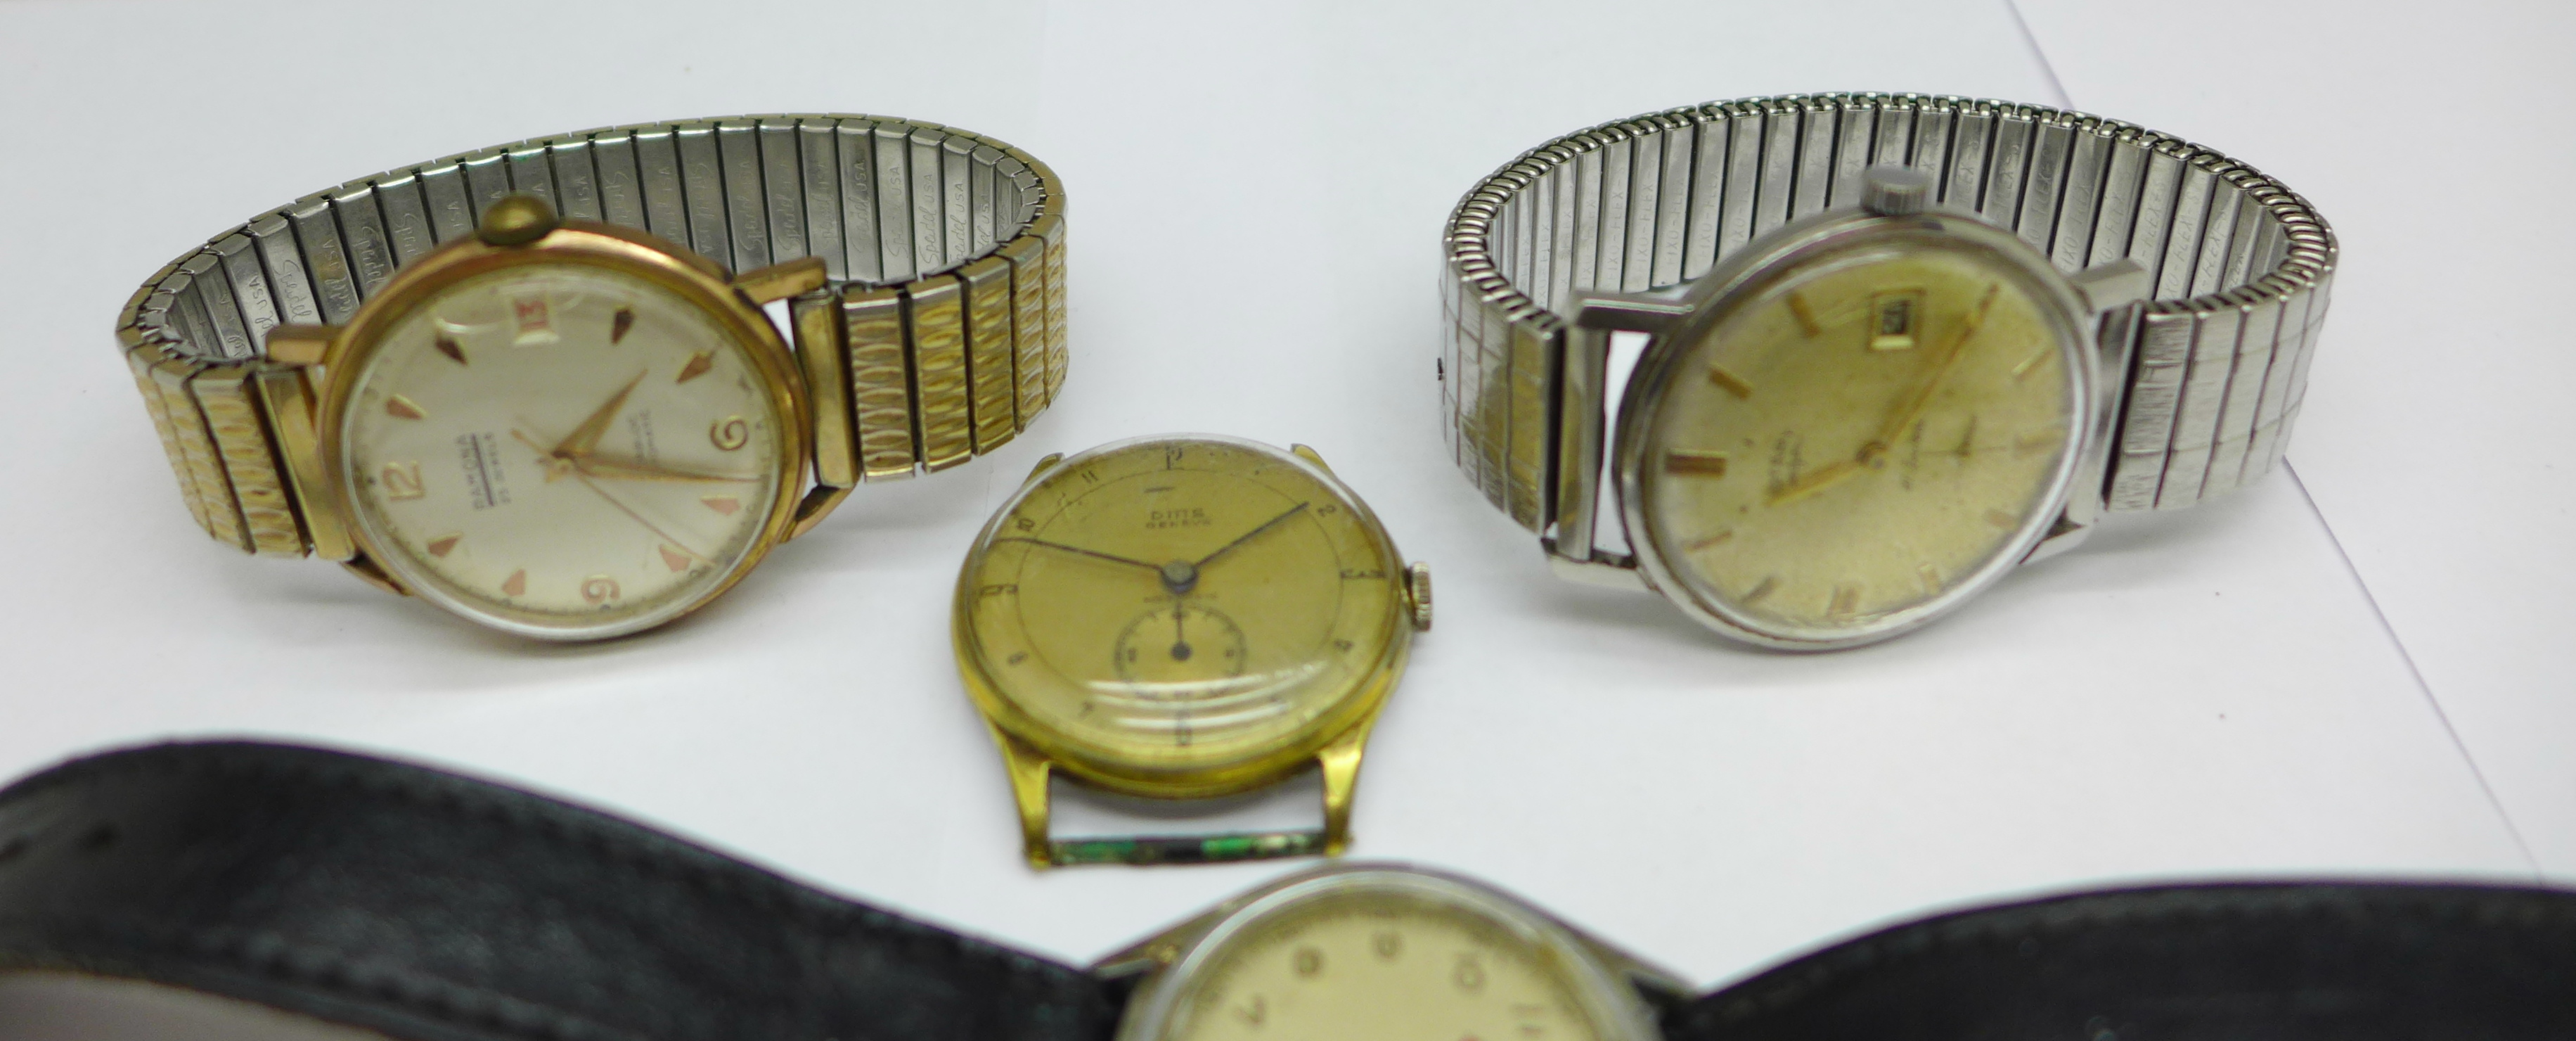 Five wristwatches including Bernex Barracuda and Ramona automatic - Image 2 of 5